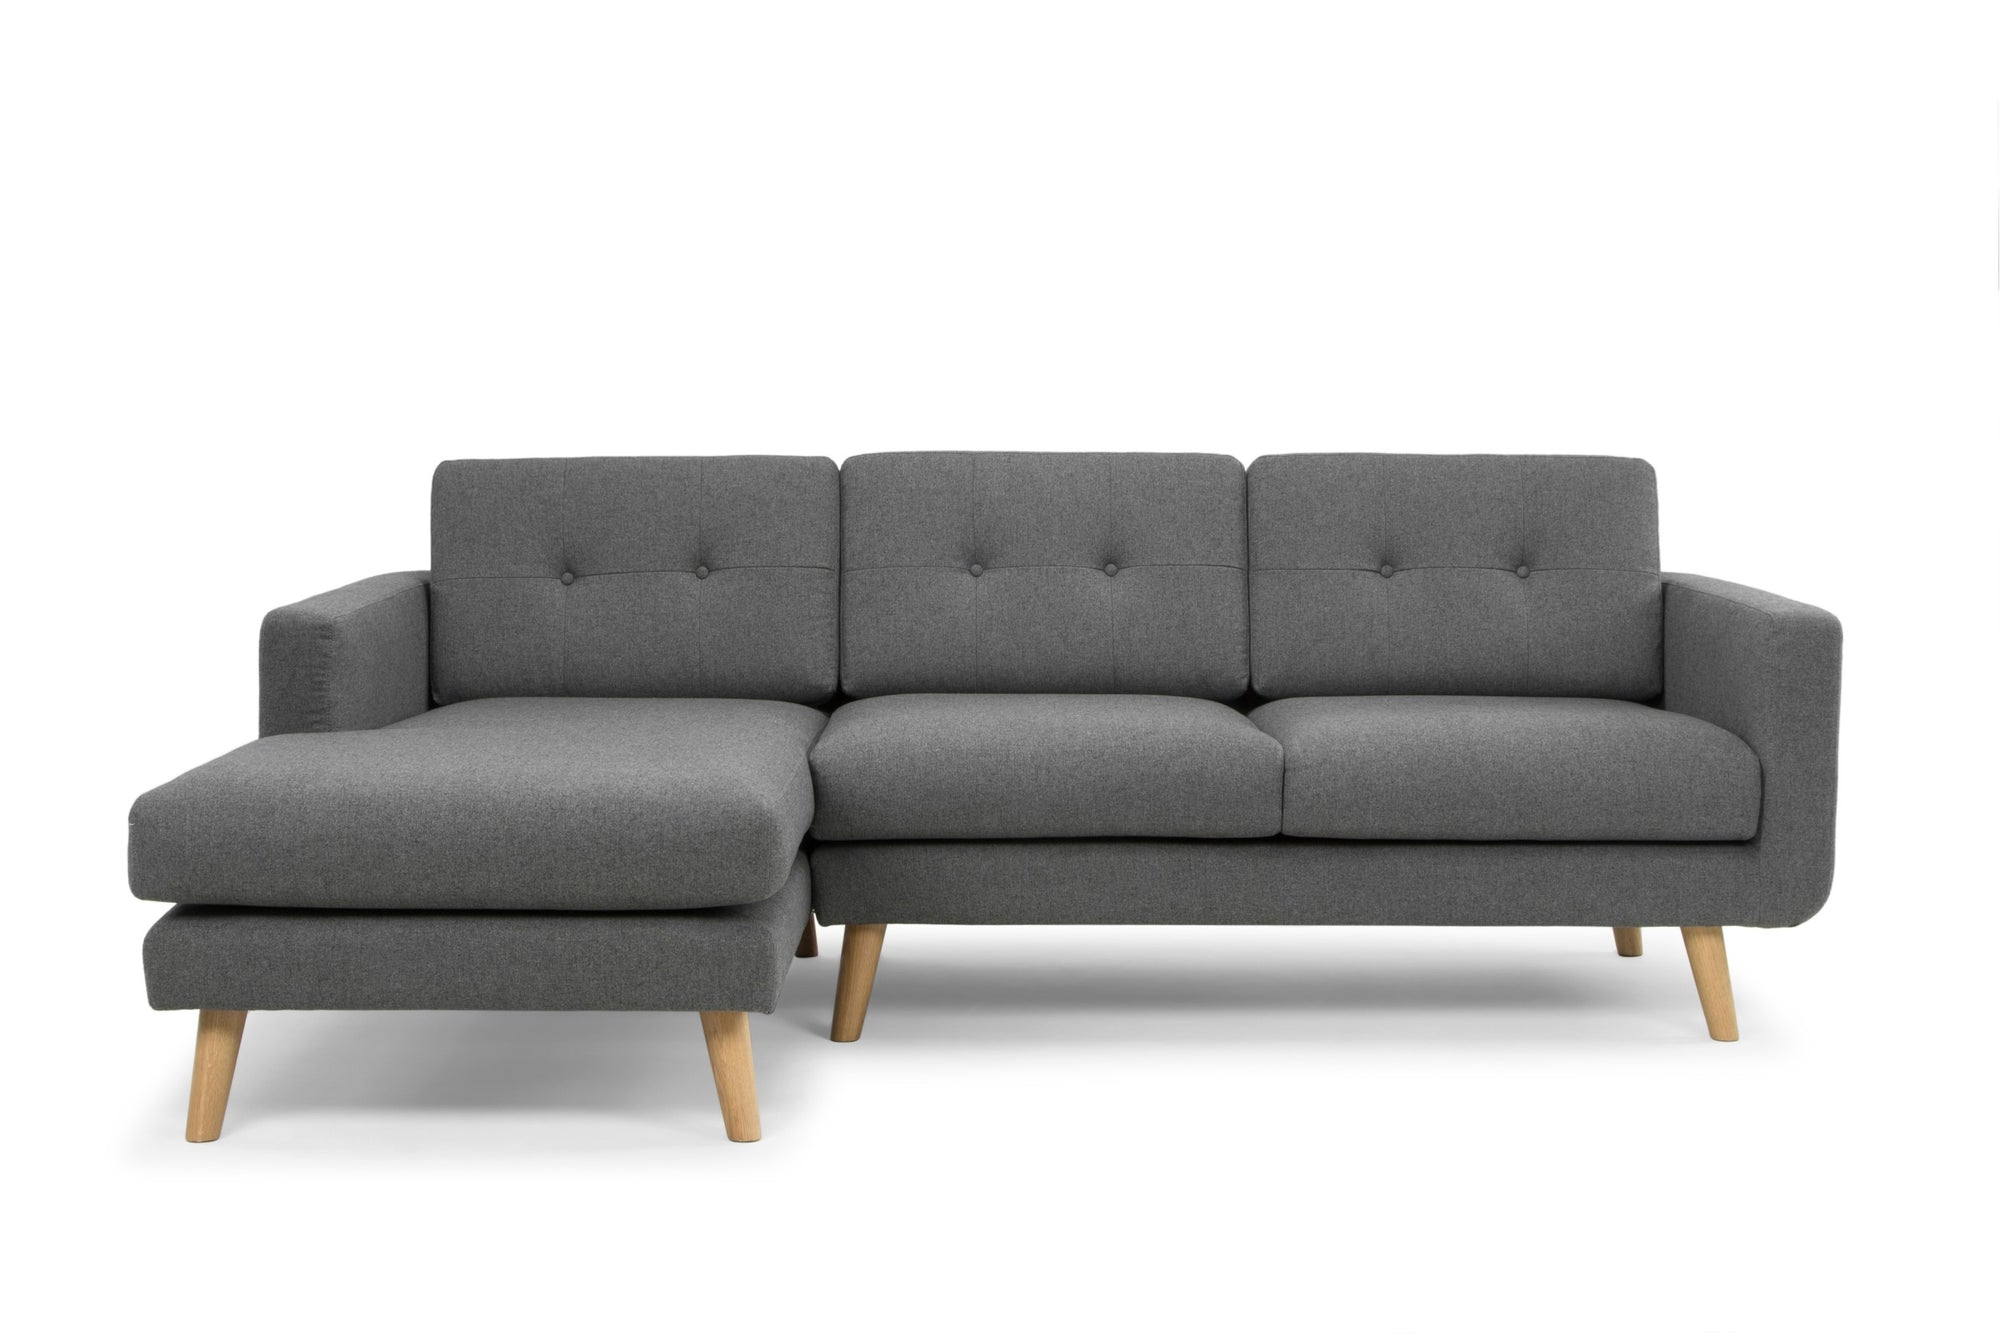 Olav large three seater sofa with chaise - corner sofa - by Calvers &